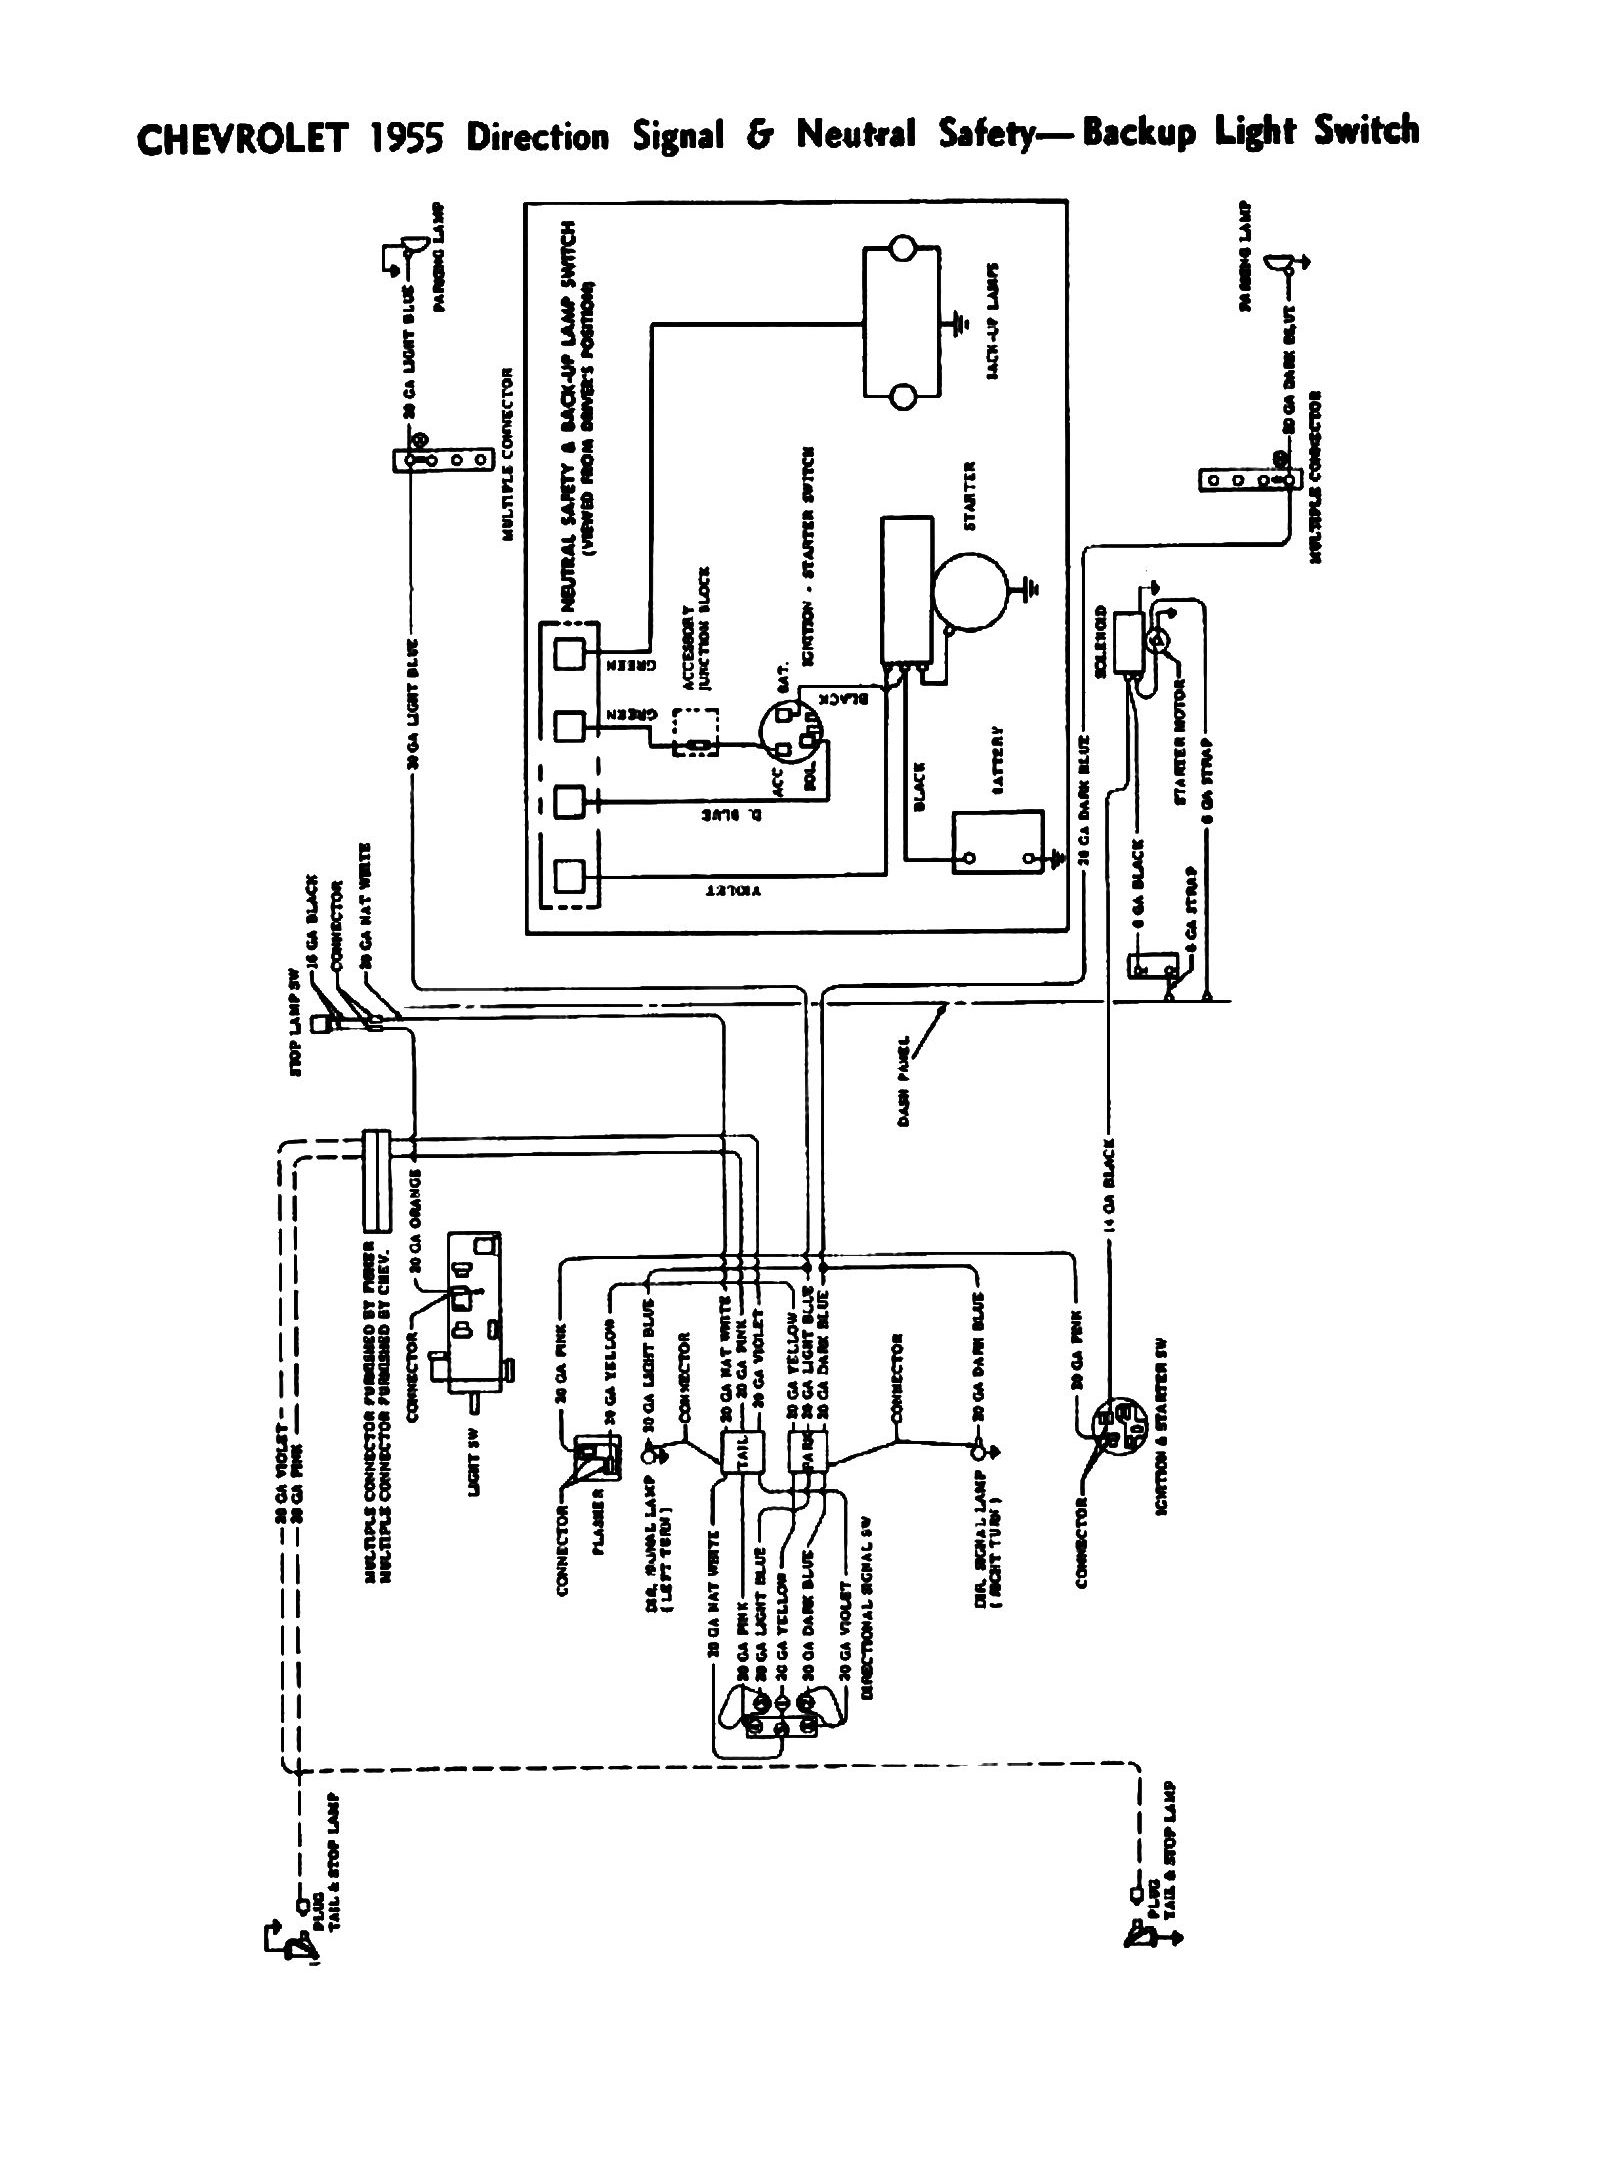 301528699100 besides Ford Jubilee Wiring Diagram 1953 Tractor 6 Volt Positive Ground furthermore Small Block Chev Hheater Hose Routing Diagram in addition How To Wire A Chevy Starter Wiring Diagram Small And Ford Solenoid moreover 1953 Ford F100 Turn Signal Wiring Diagram. on 1952 chevy wiring diagram